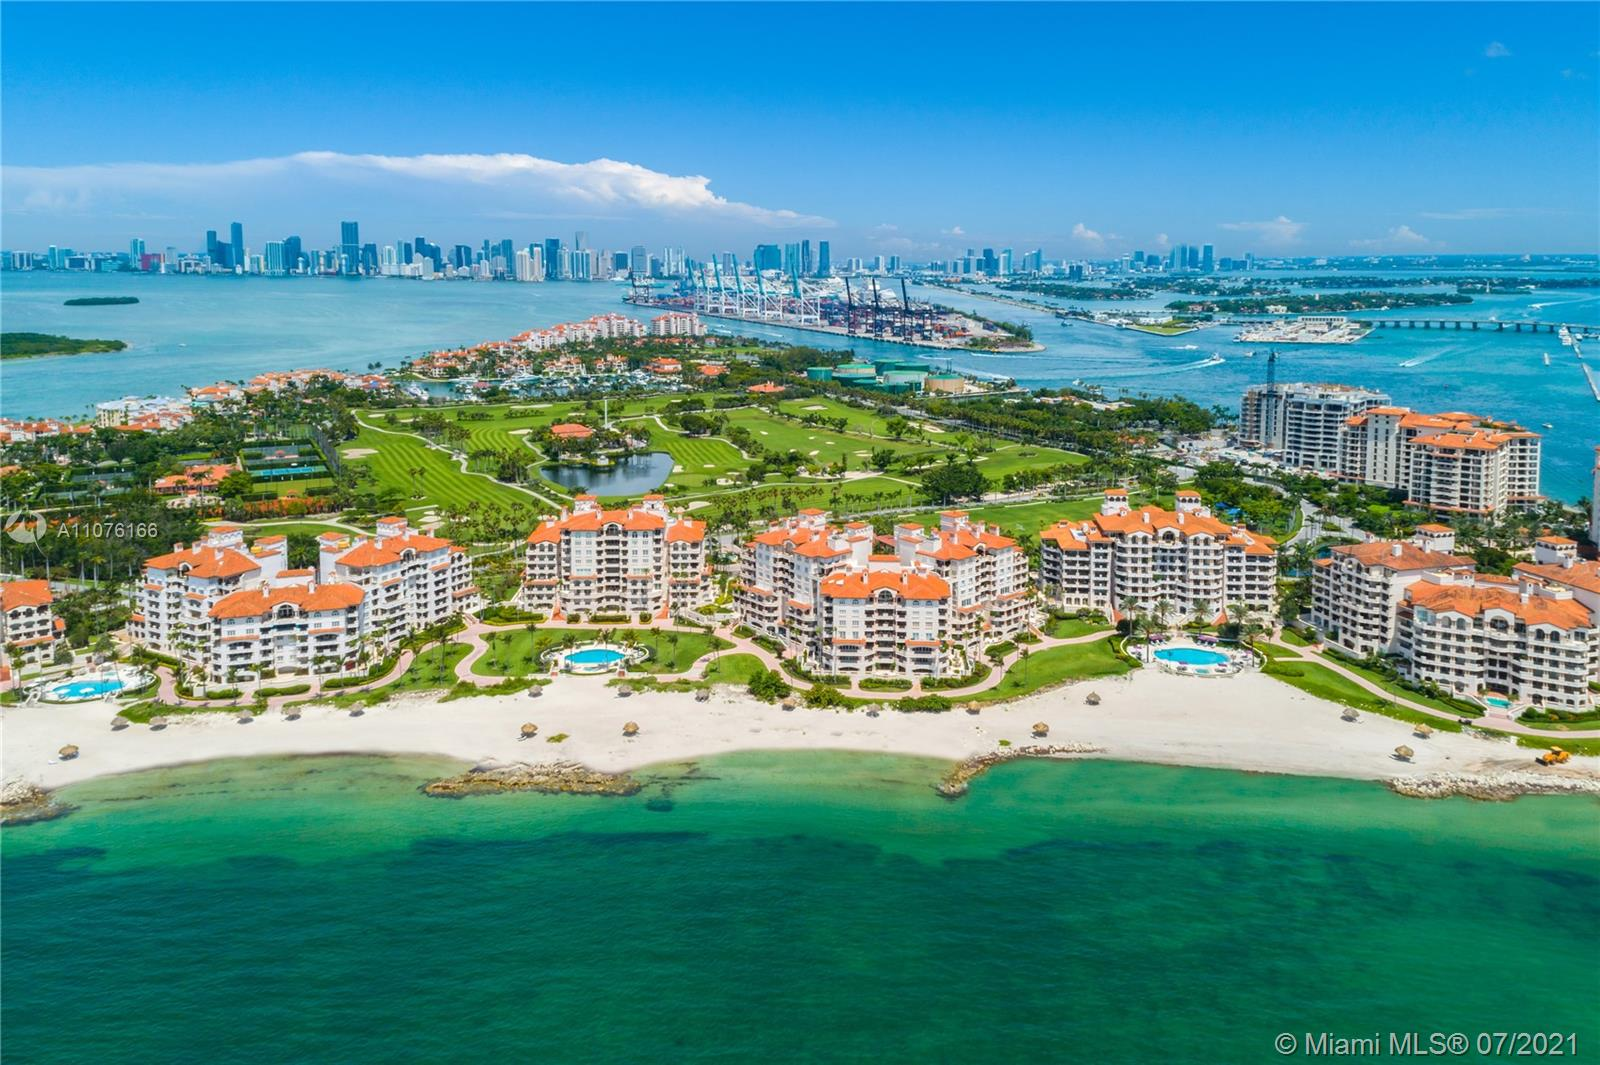 This stunning center-stack Oceanside unit redefines luxury living at its finest. Located in one of the most desired buildings on Fisher Island it offers breathtaking east and west views from the 5th floor. Features include: 4,590 sq. ft. interior, 3 bedrooms + family room with terrace, 3.5 baths, expansive balconies overlooking the ocean perfect for entertaining, open layout, marble floors throughout, impact glass doors and windows, a spacious master bedroom with a private terrace, his and her walk-in closets and many more features. The unit comes with 2 parking spaces, 2 golf carts, 2 golf cart parking spaces, and 2 storages. No membership is required. Live the Fisher Island lifestyle in this private oasis! easy to show.